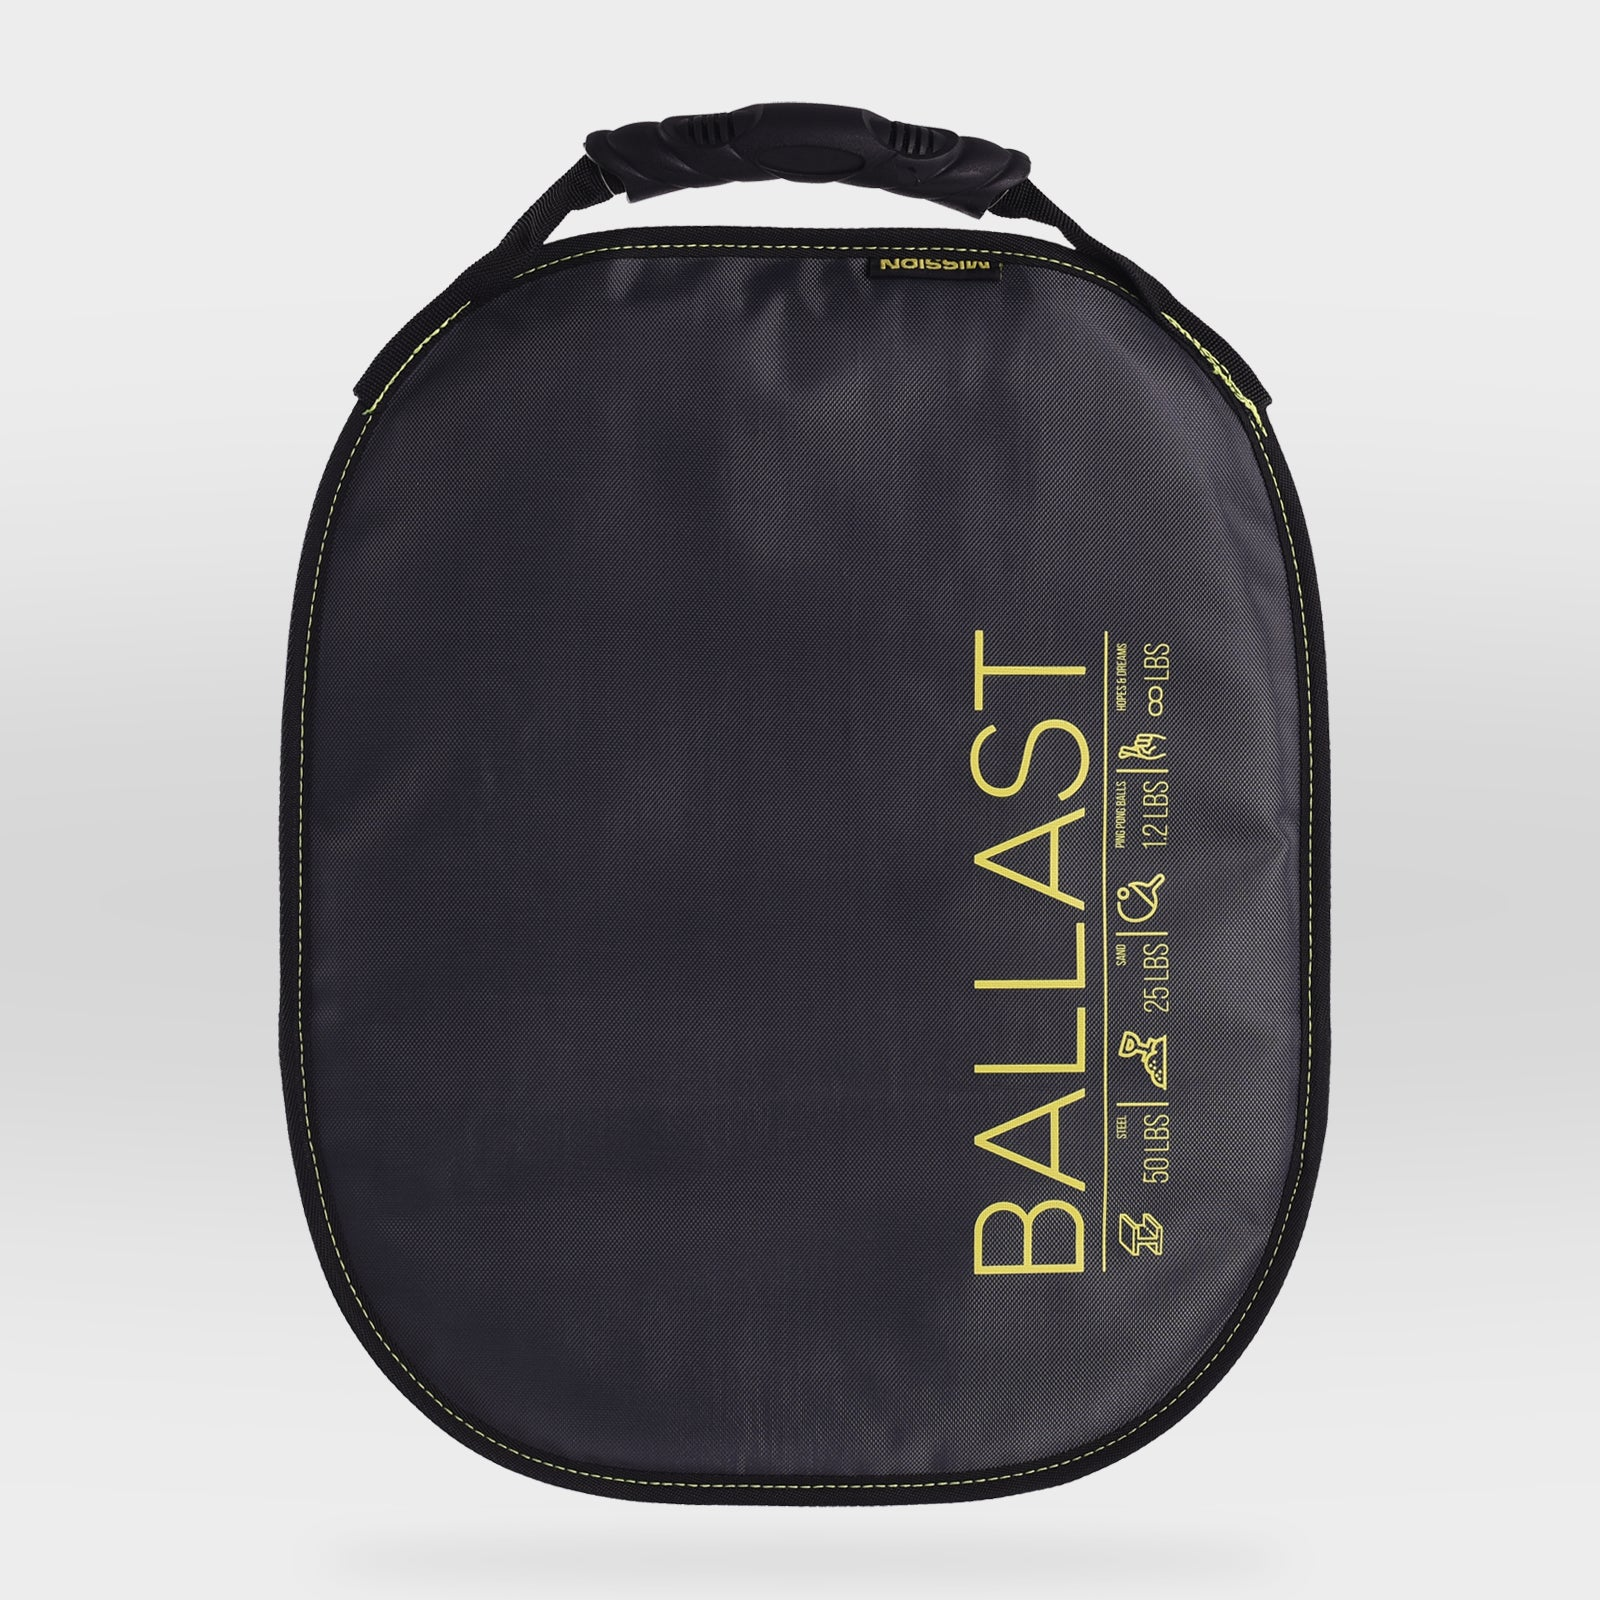 MISSION ATLAS Ballast Bag